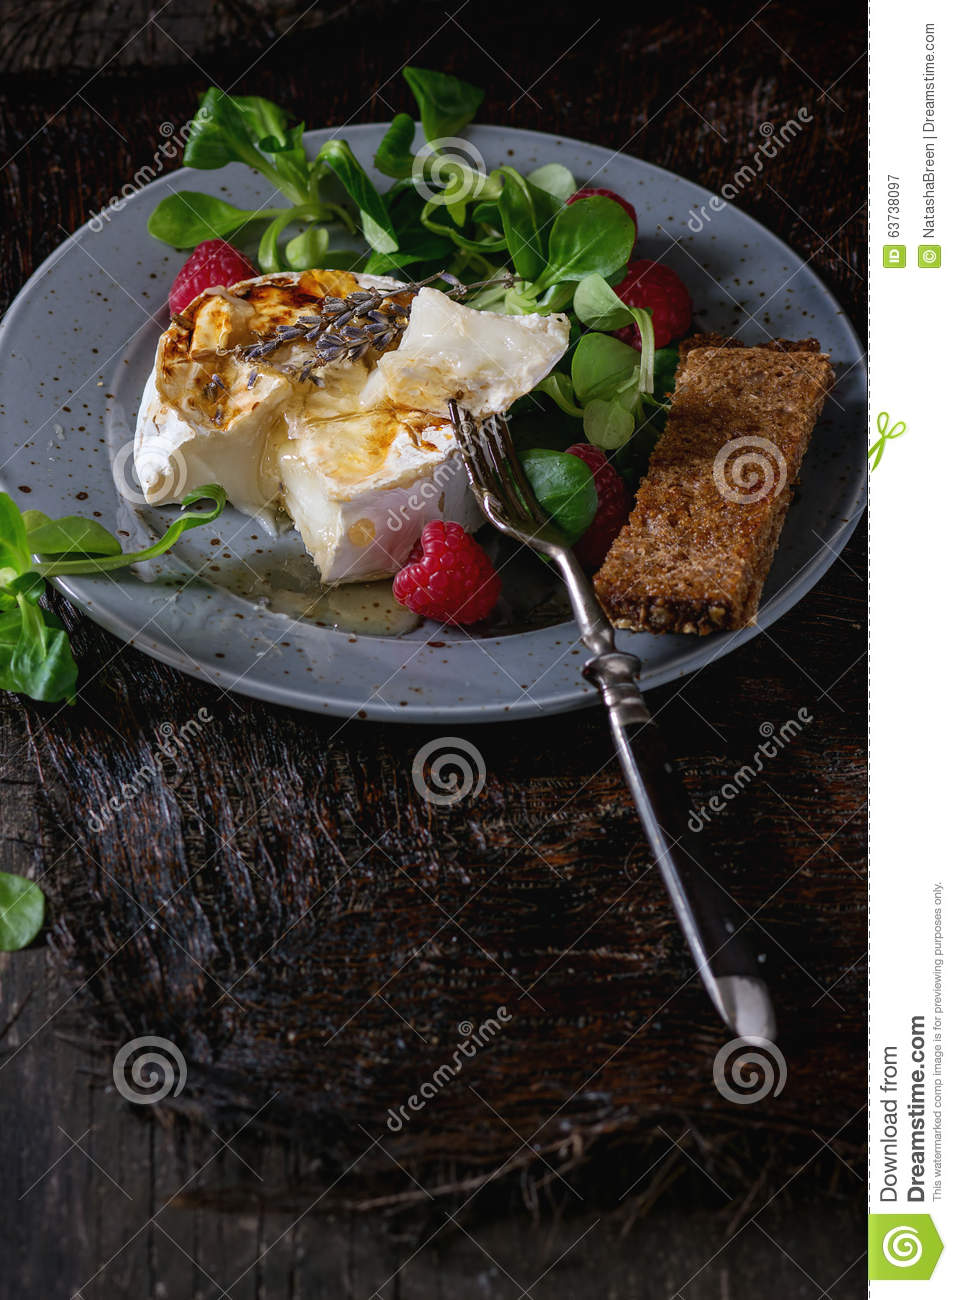 Baked Goat Cheese With Raspberries And Thyme Recipe — Dishmaps